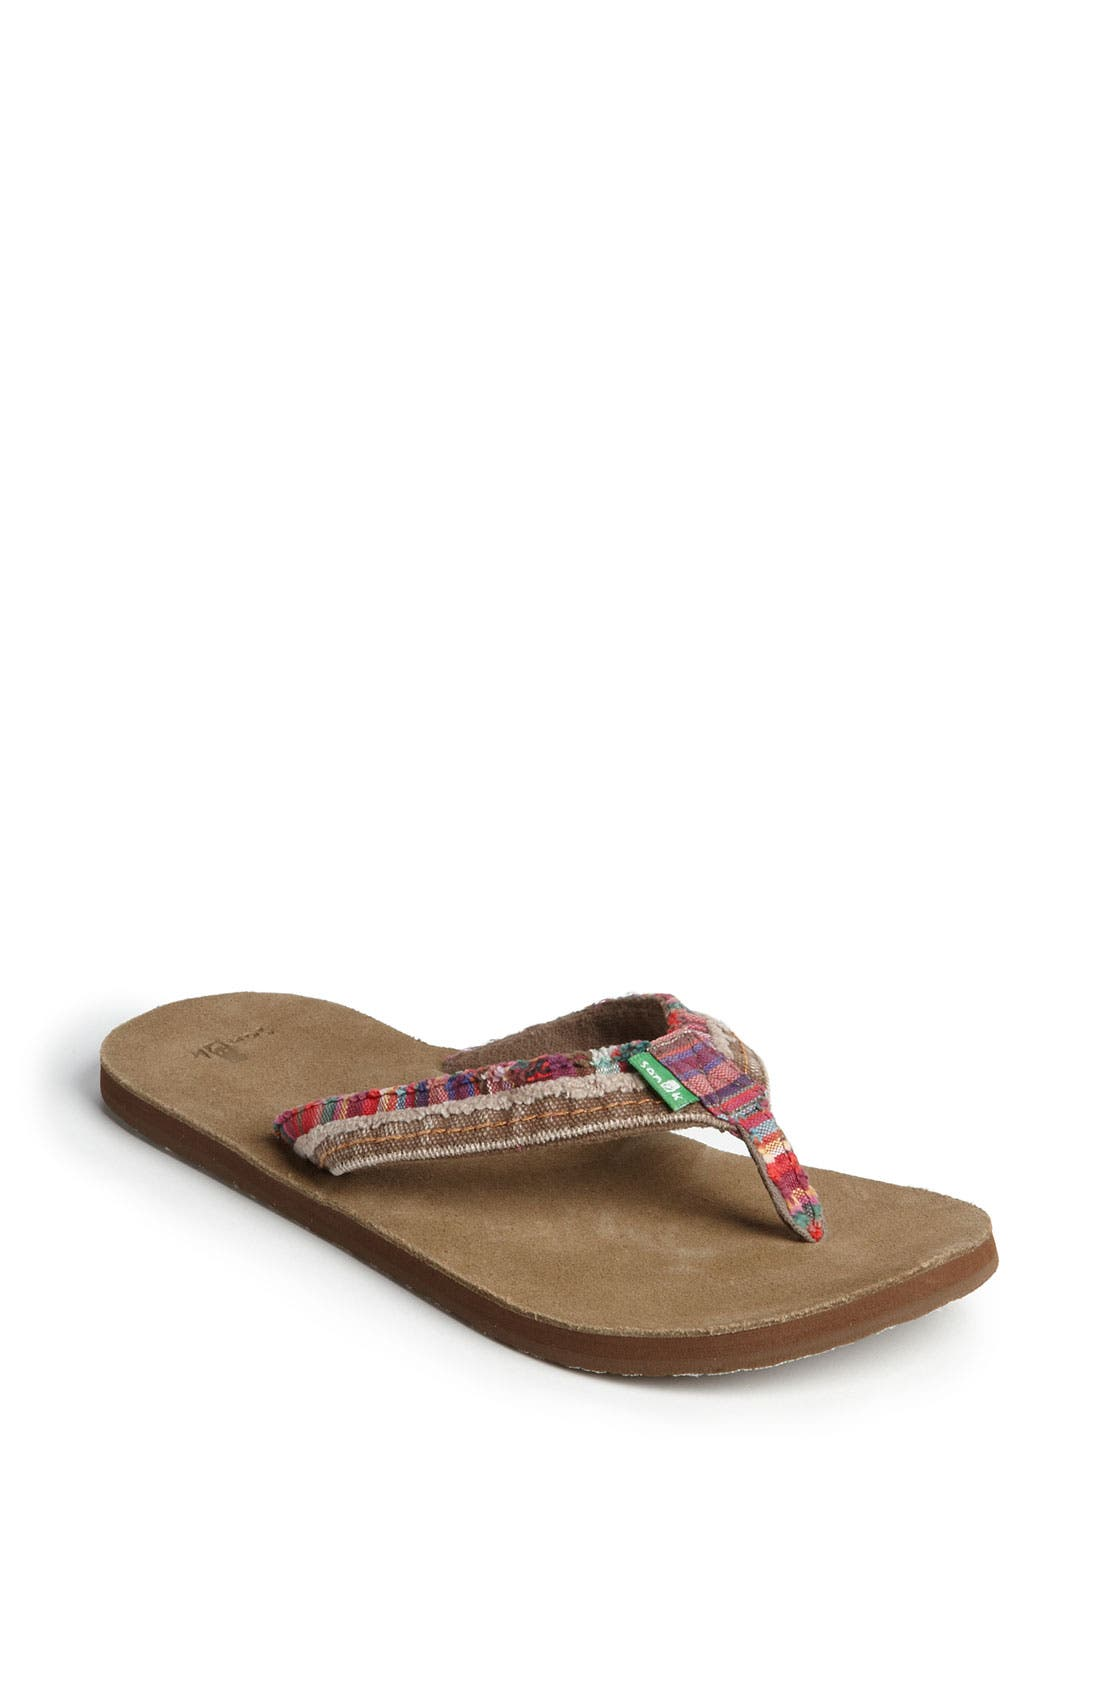 Alternate Image 1 Selected - Sanuk 'Fraid Too' Flip Flop (Women)